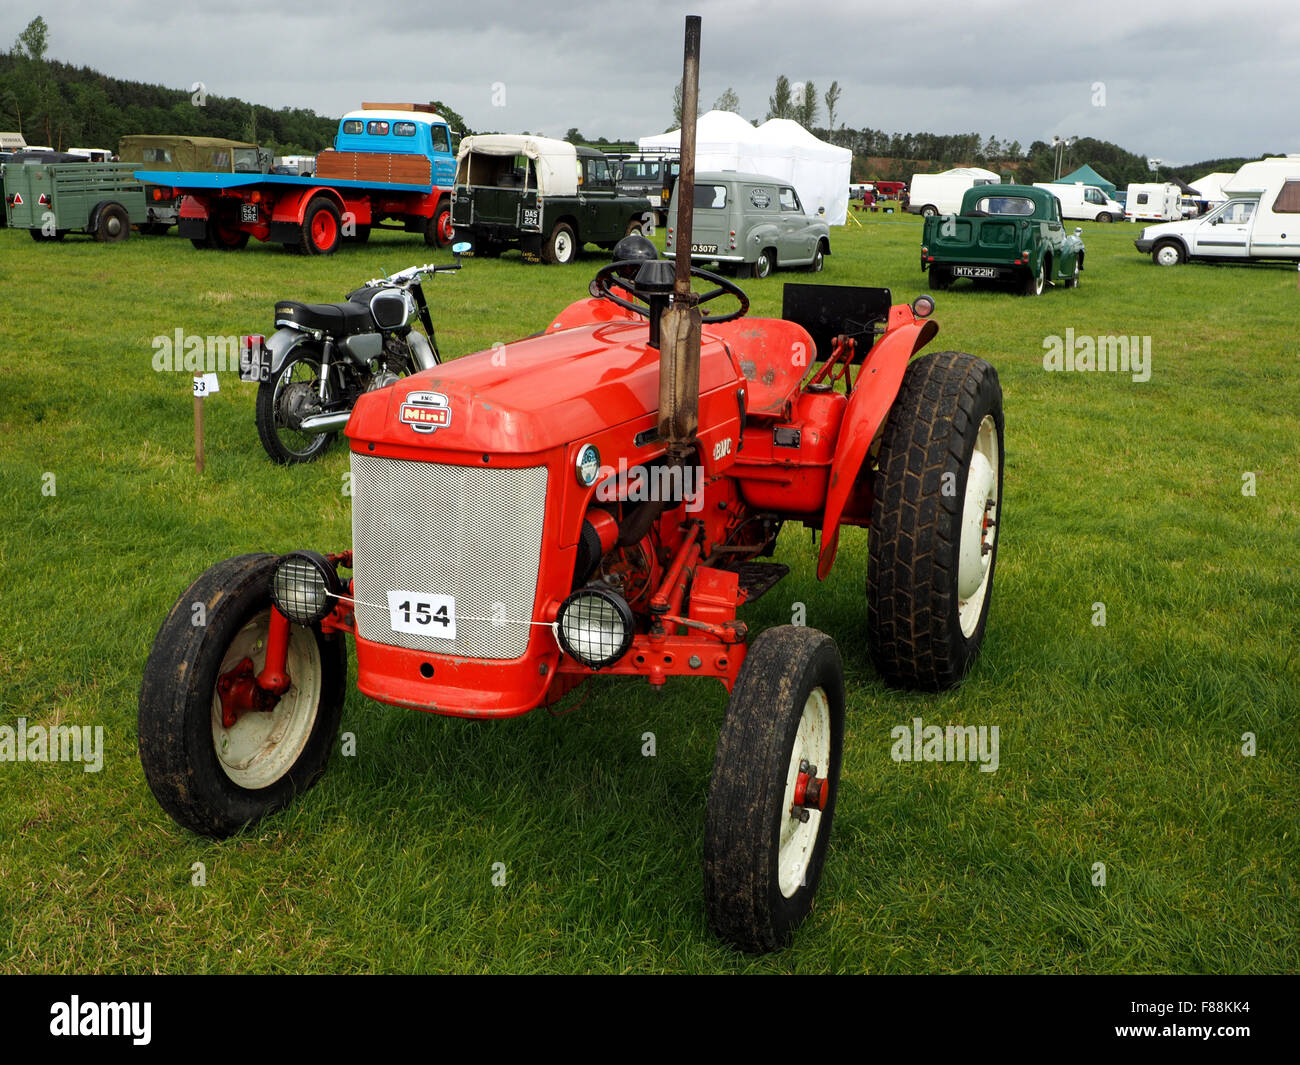 classic bright red vintage tractor resplendent in show field at agricultural show - Stock Image